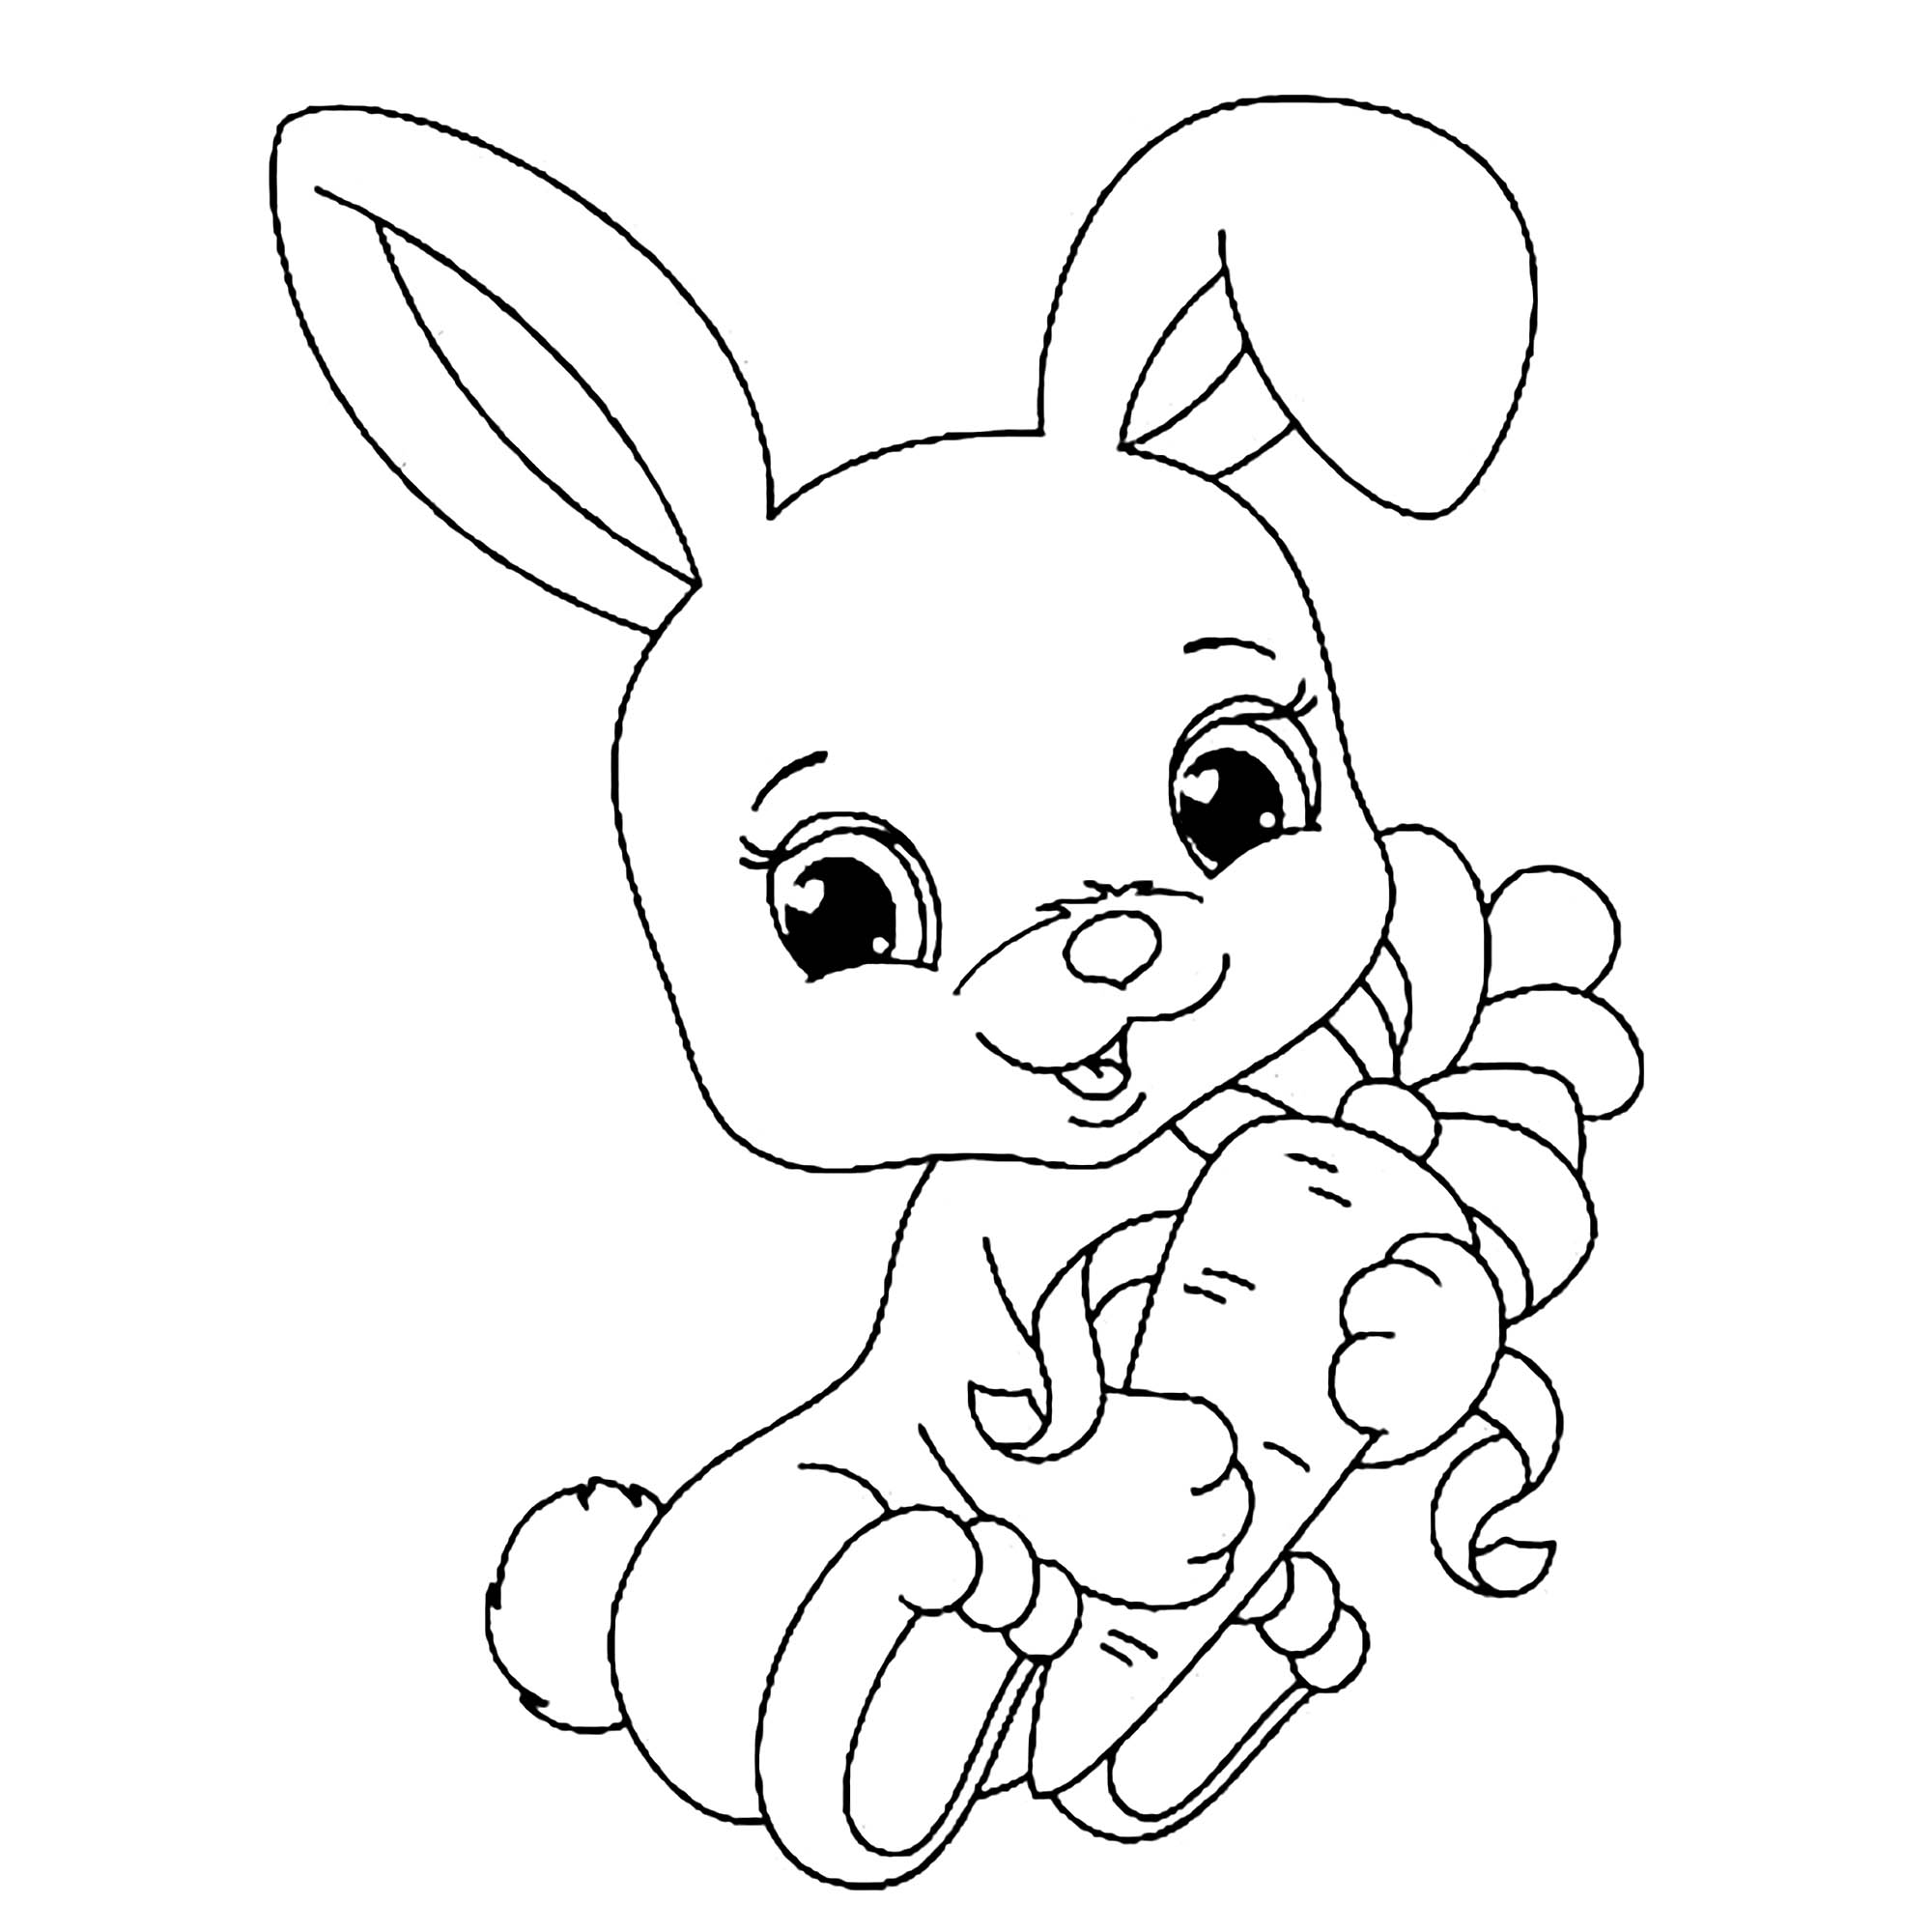 rabbit images for colouring rabbit coloring pages free download on clipartmag for images rabbit colouring